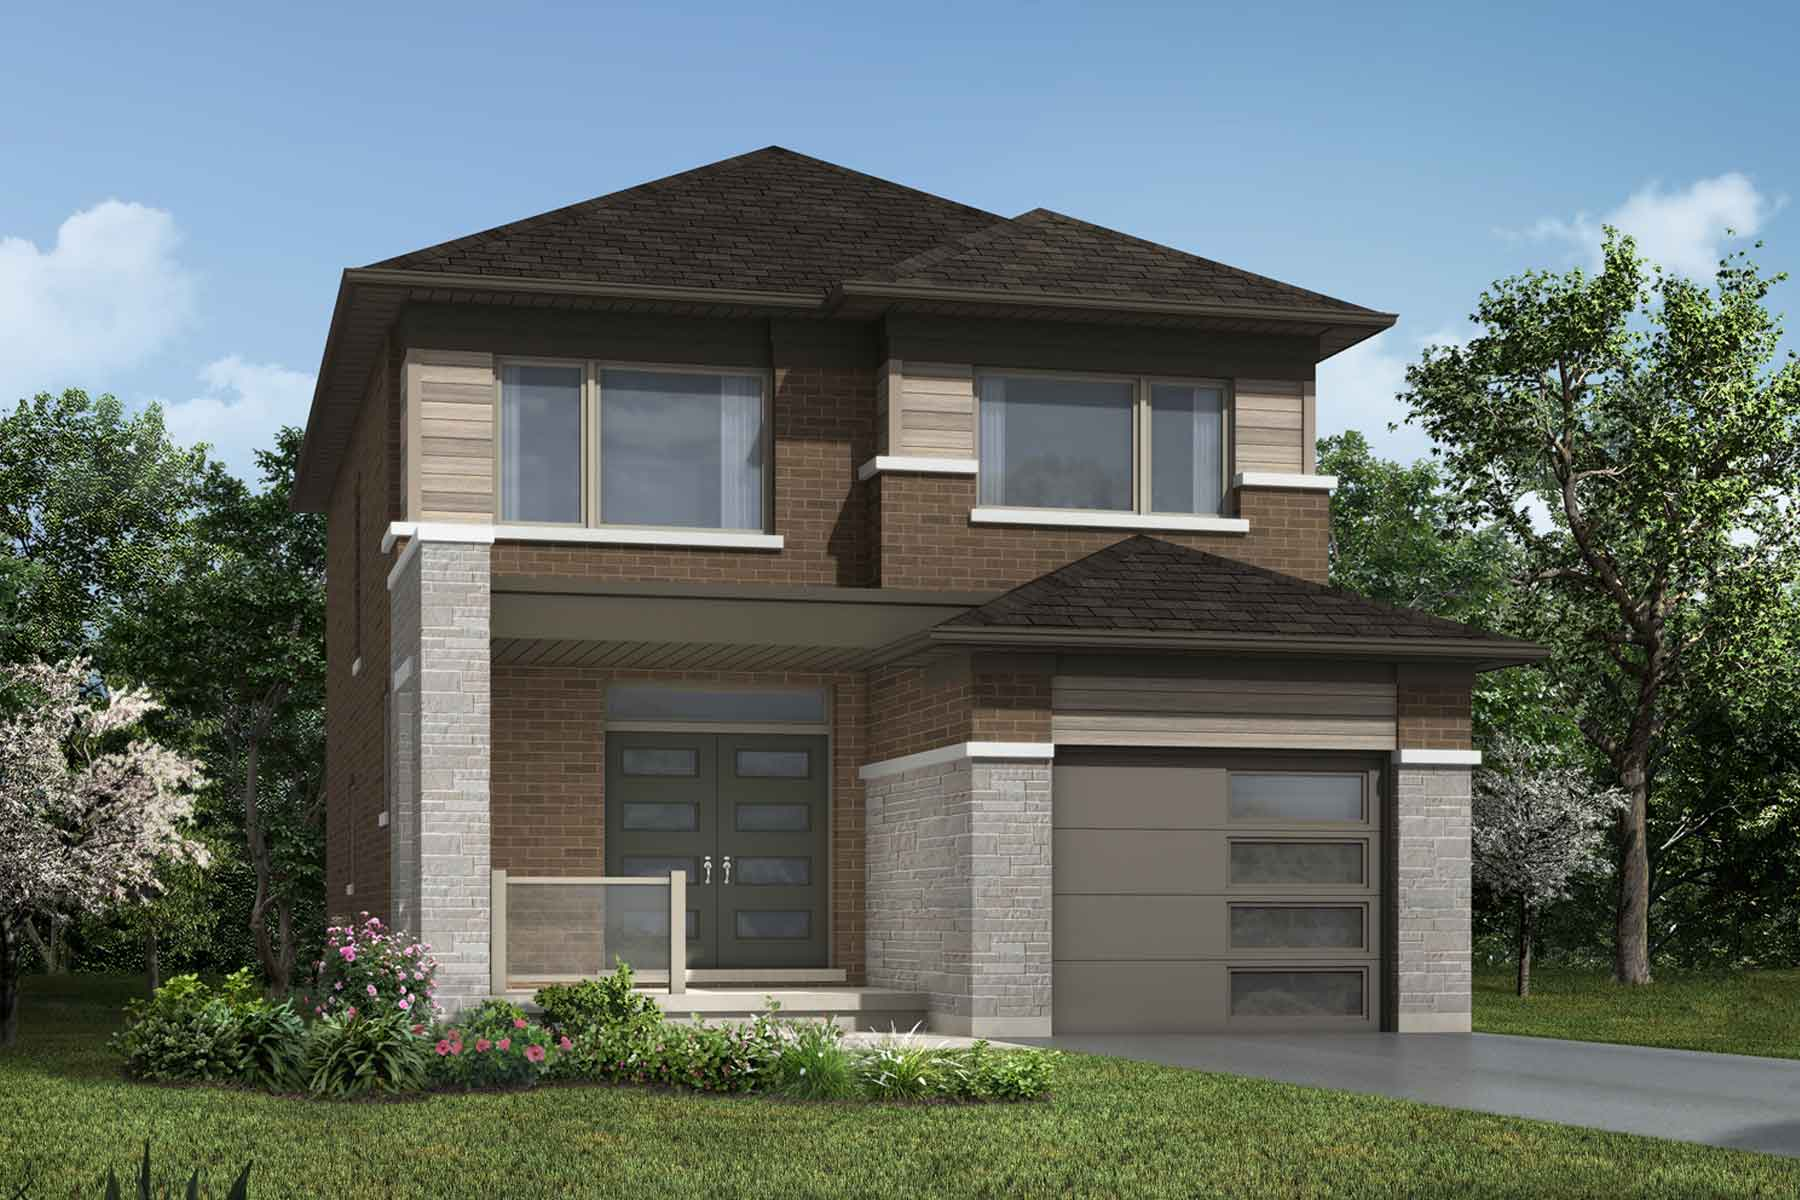 Wildflower Crossing transitional_southestates_alderview_main in Kitchener Ontario by Mattamy Homes